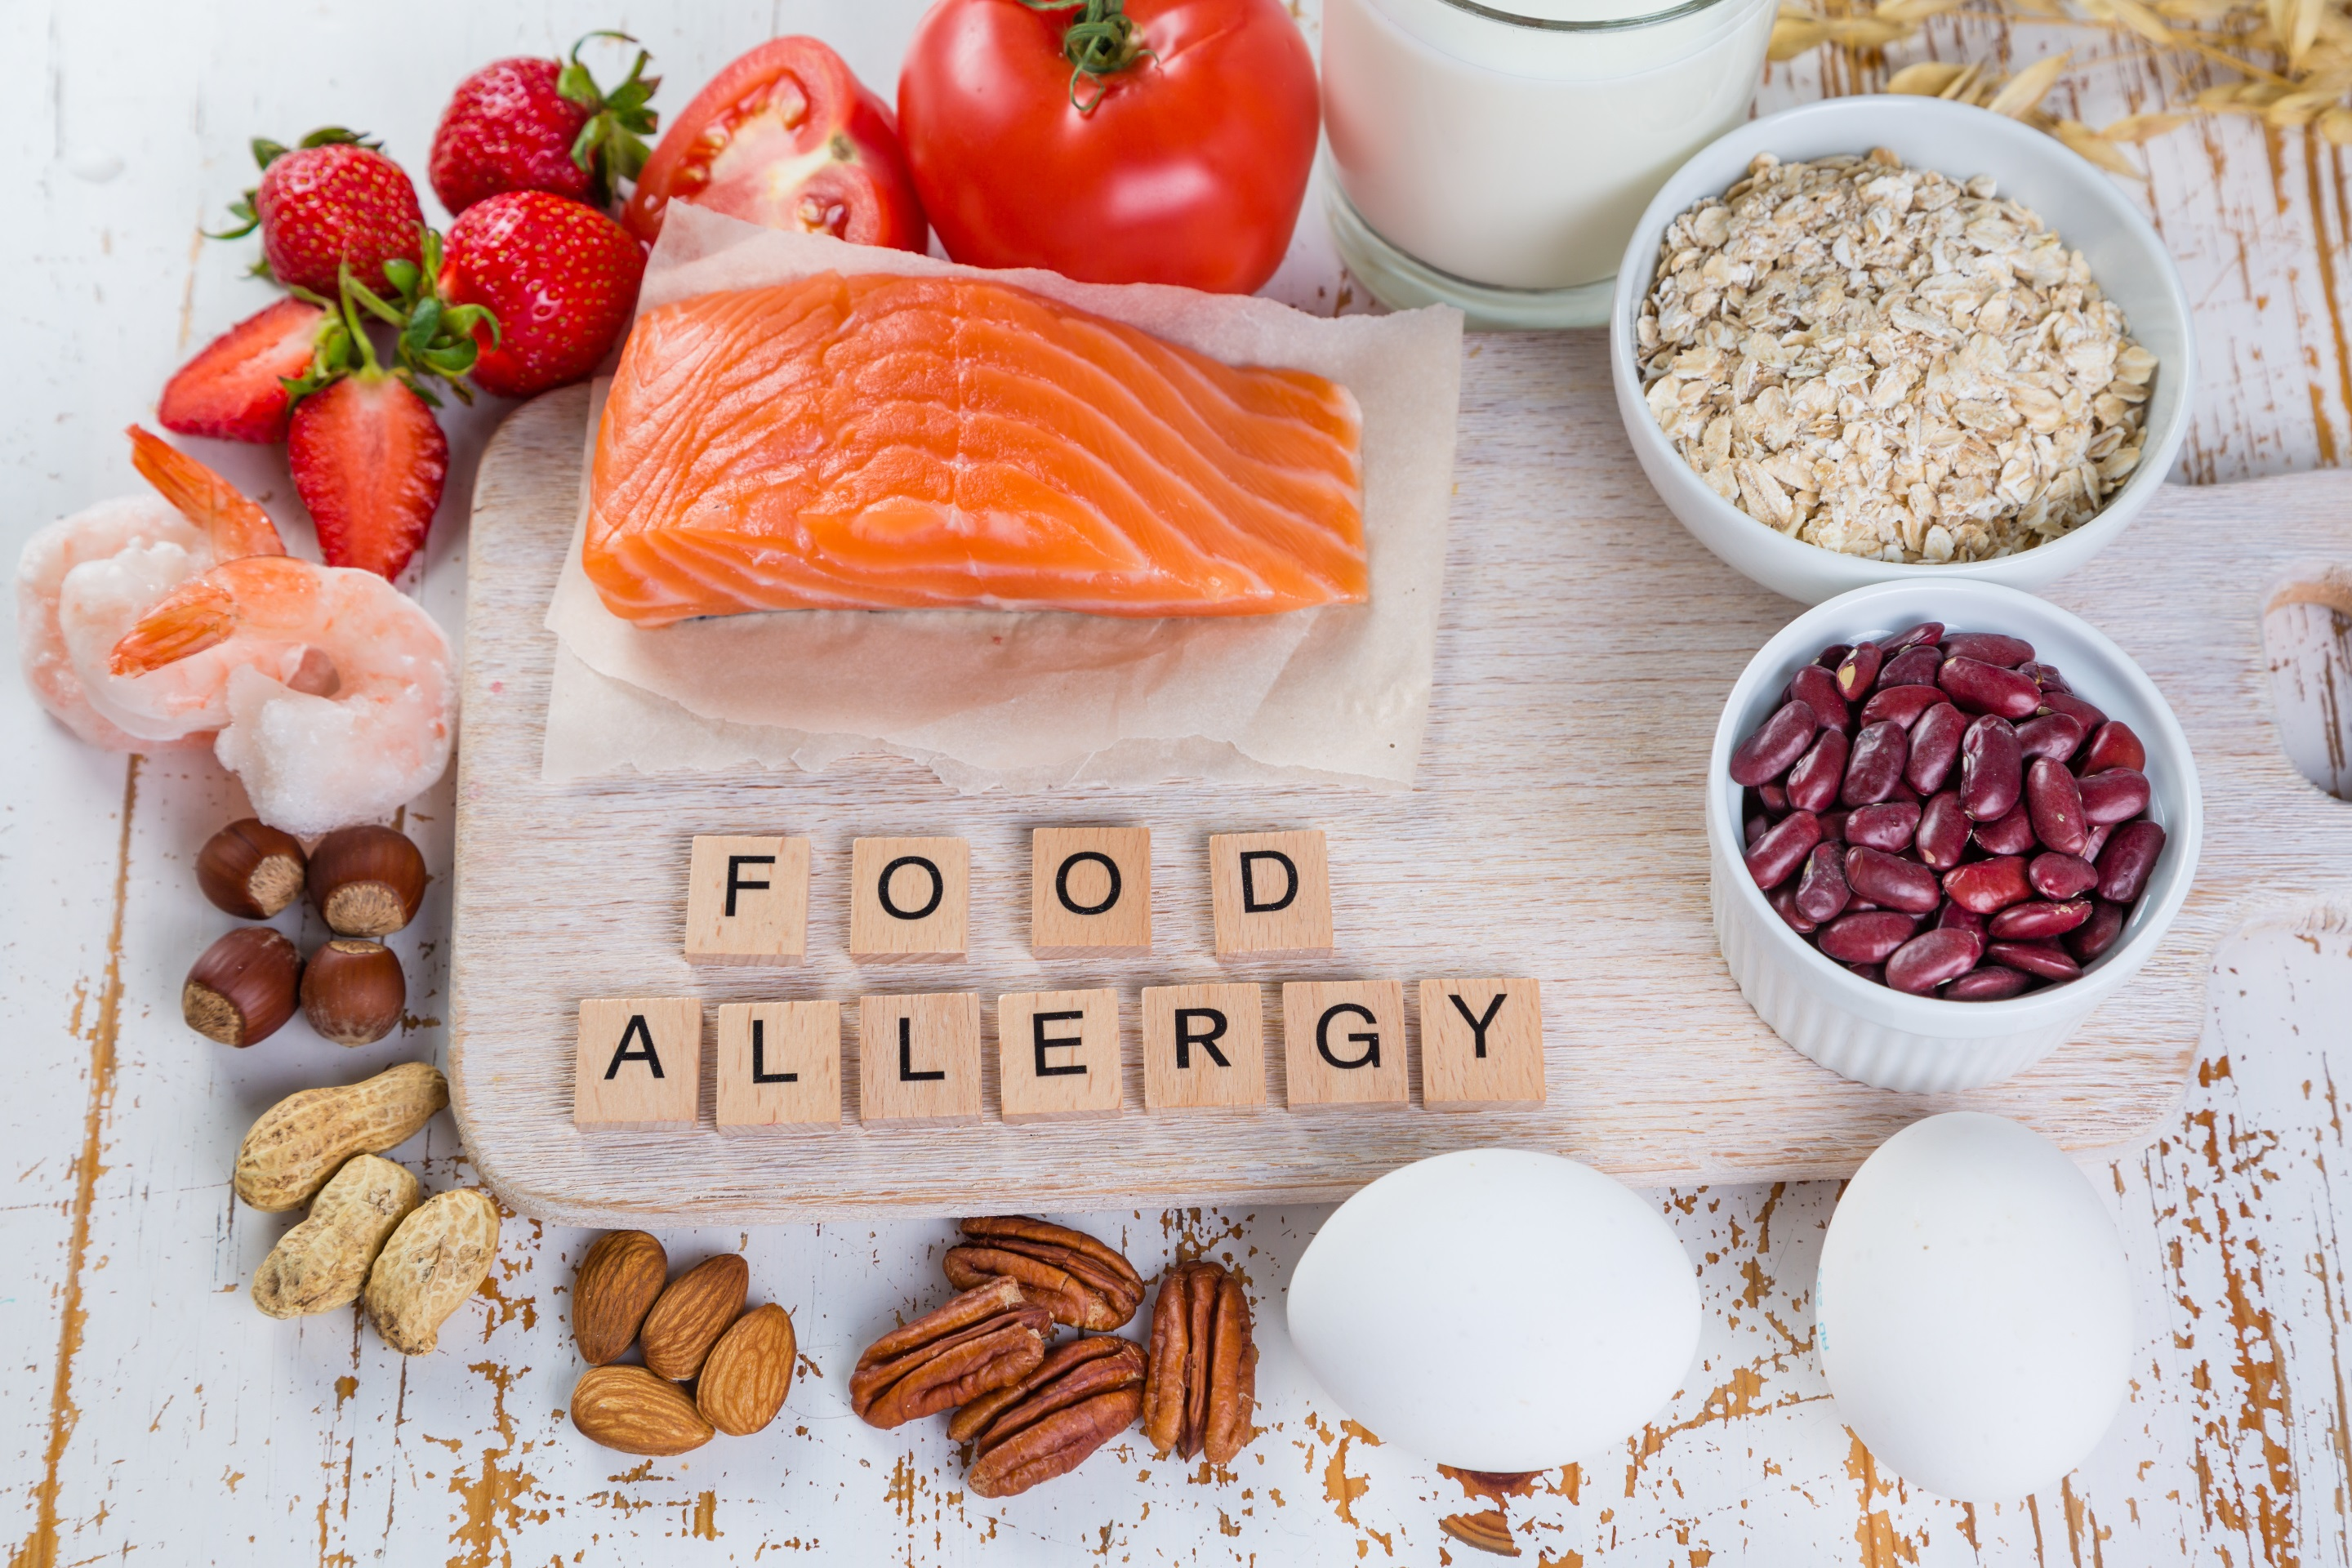 Mentionable symptoms and risk factors of food allergy